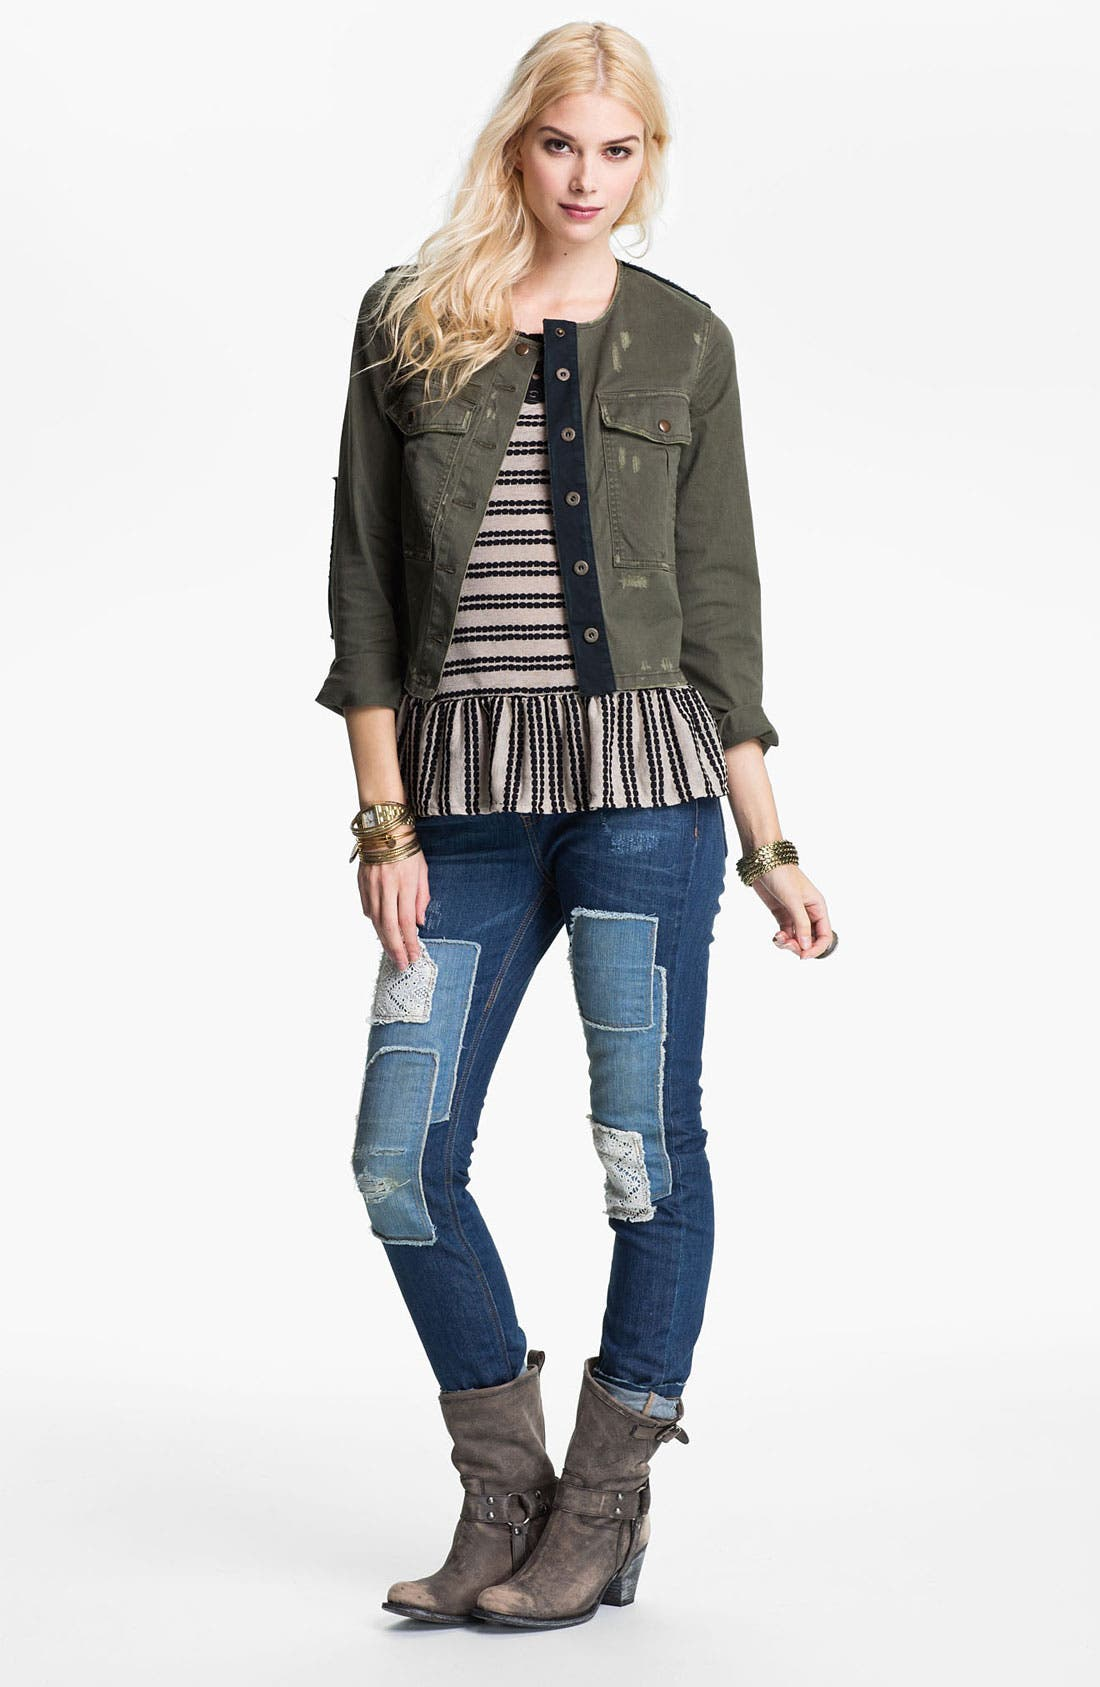 Alternate Image 1 Selected - Free People Jacket, Top & Jeans